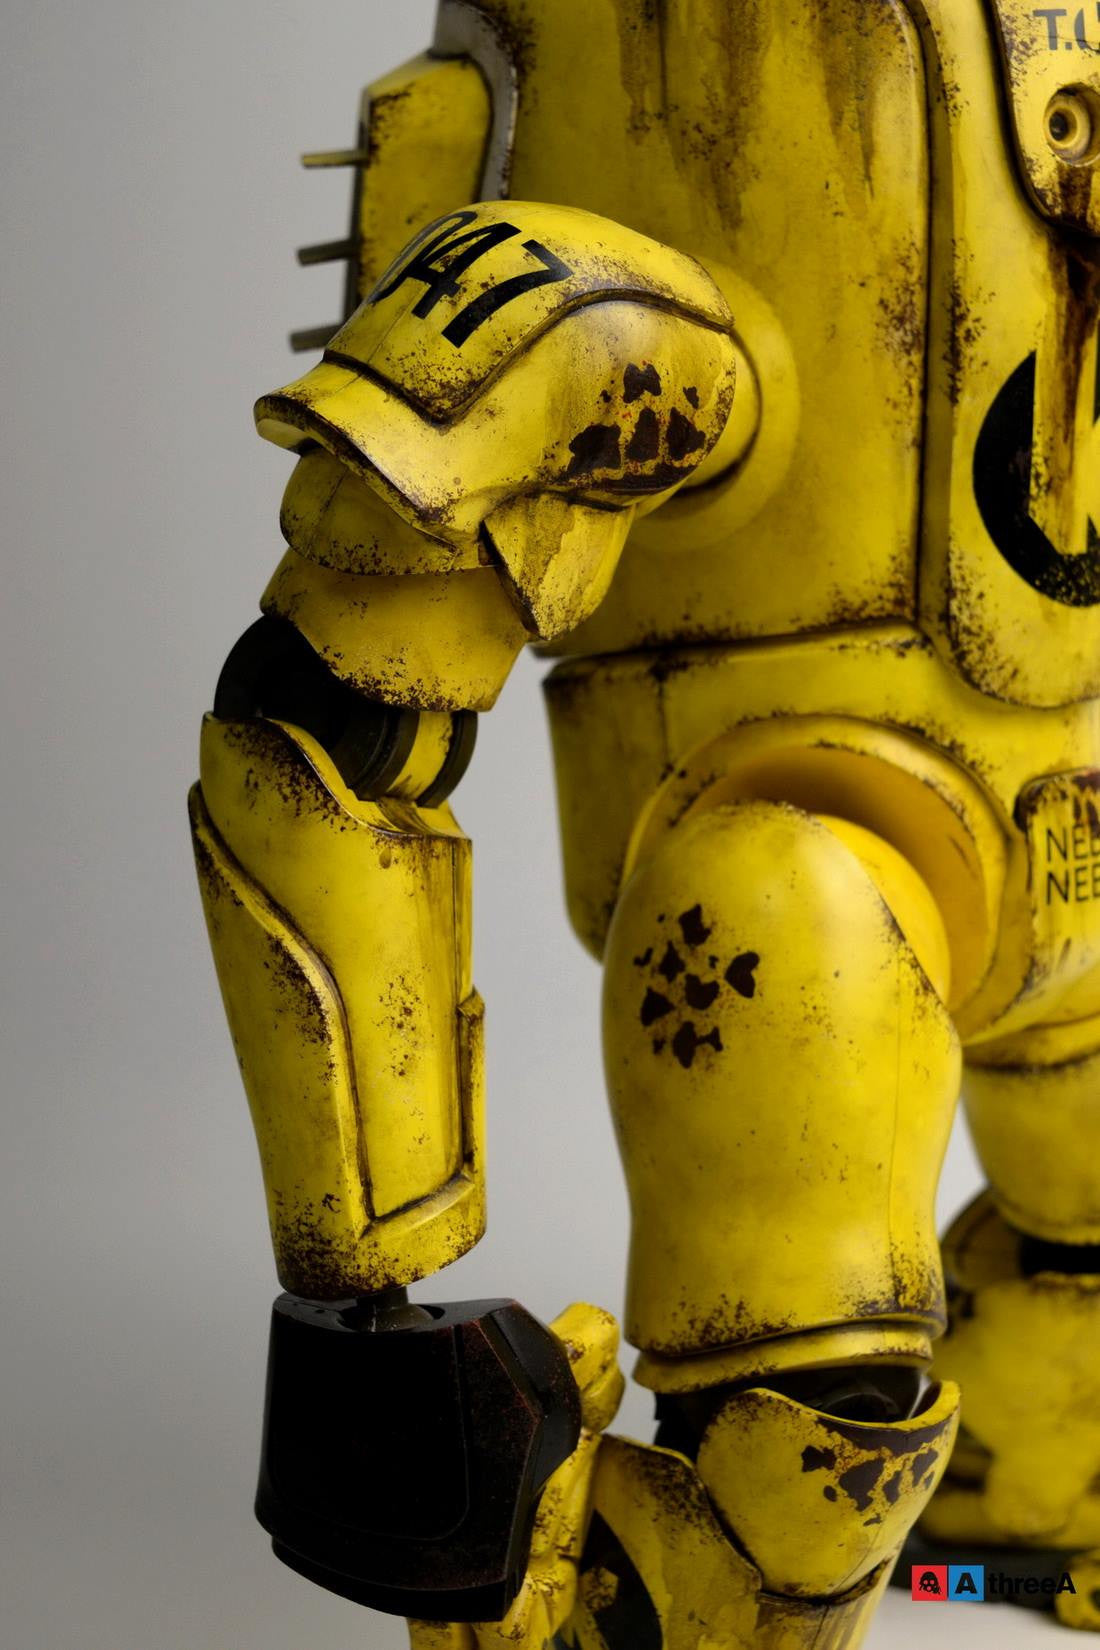 ThreeA - Evenfall - 1/6 T.O.T.E.M Thug Pugillo - K Striker-047 (Yellow) - Marvelous Toys - 5